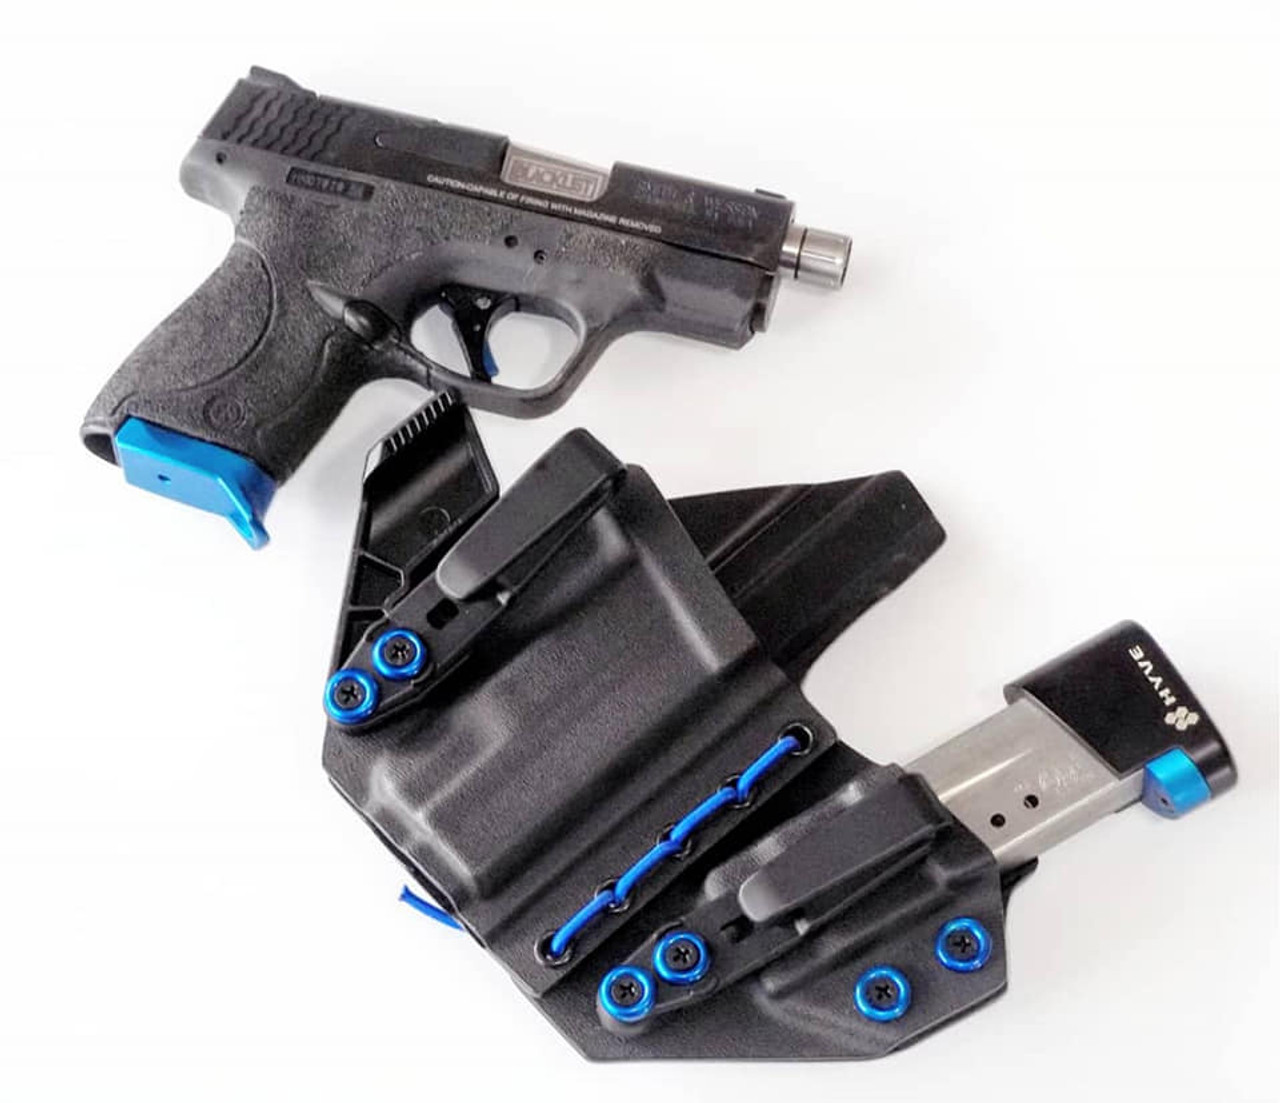 M&P Shield Appendix Carry Rig Holster with Shockcord